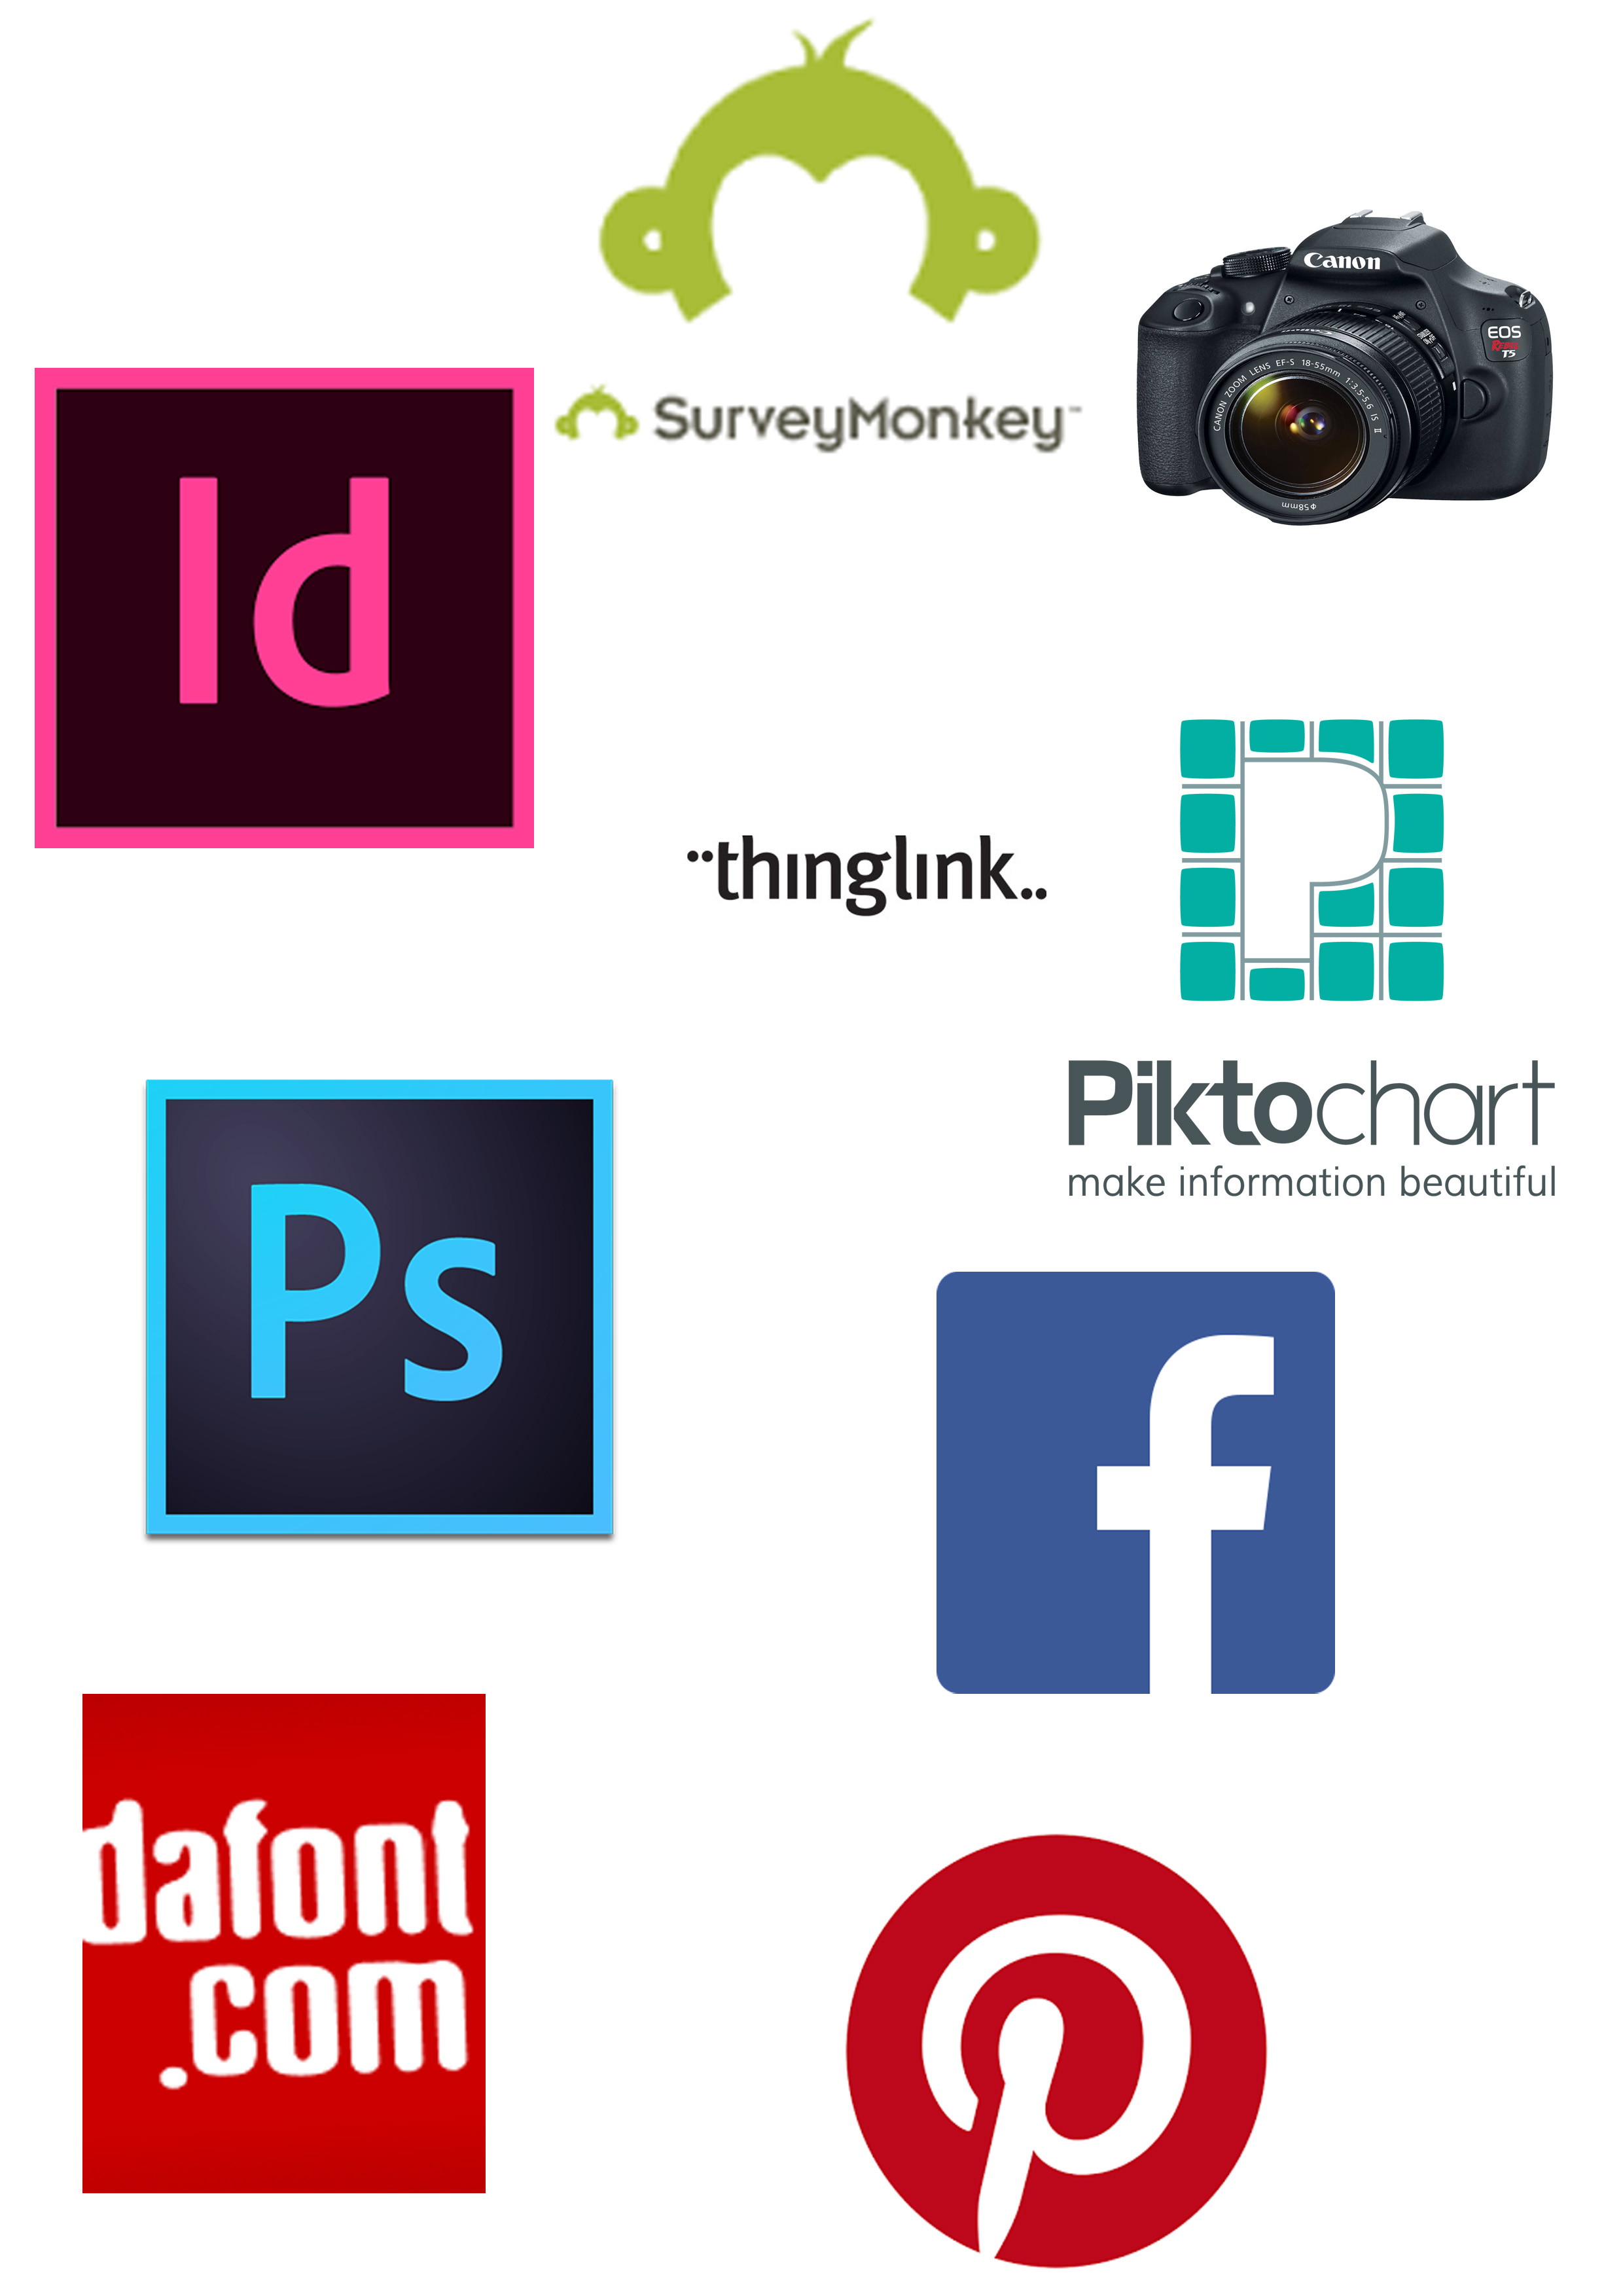 InDesign is the software that I have used to create all o